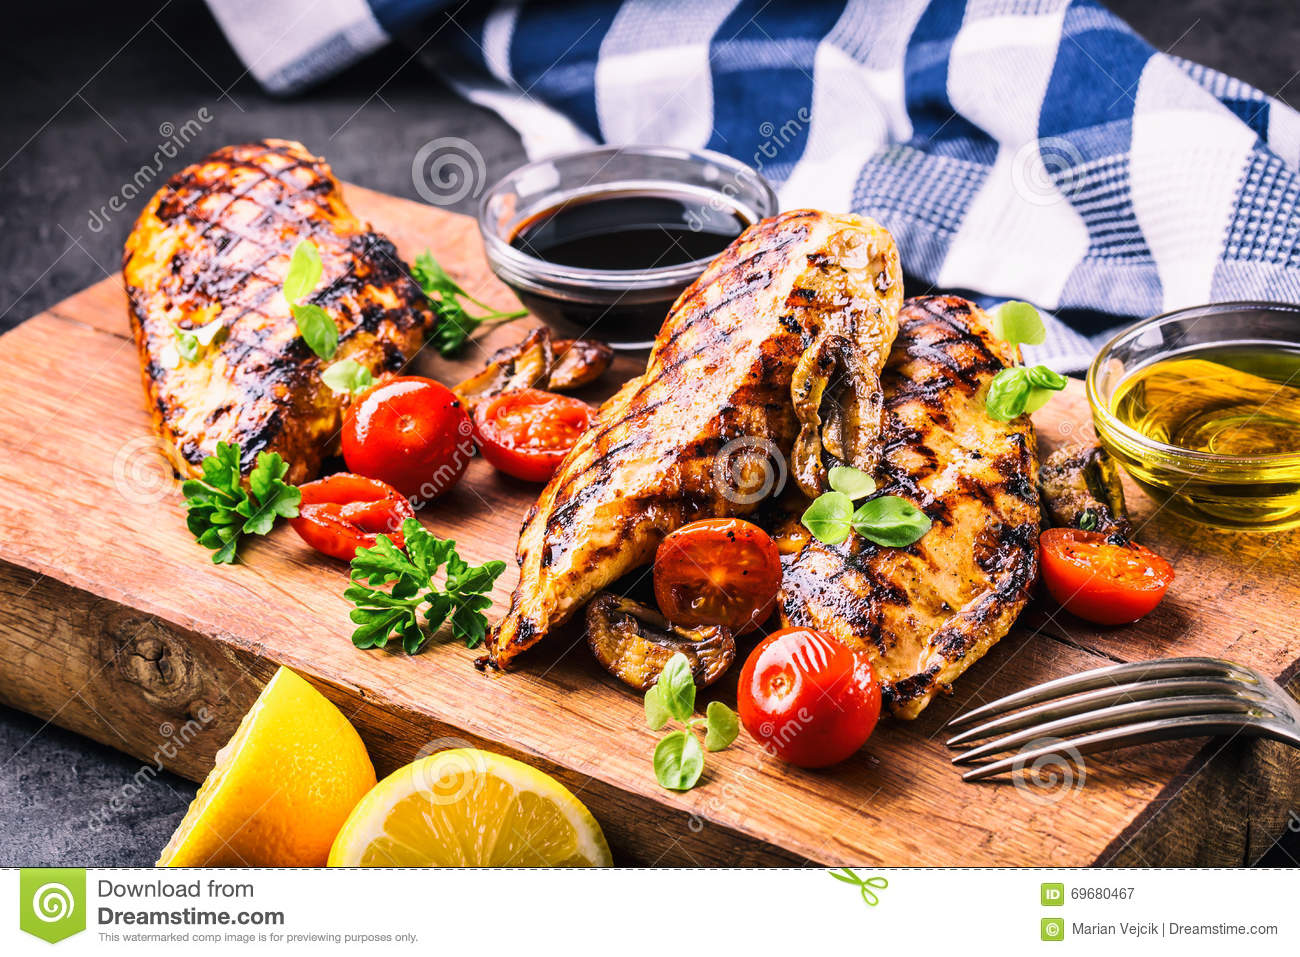 Grilled chicken breast in different variations with cherry tomatoes, mushrooms, herbs, cut lemon on a wooden board or teflon pan.